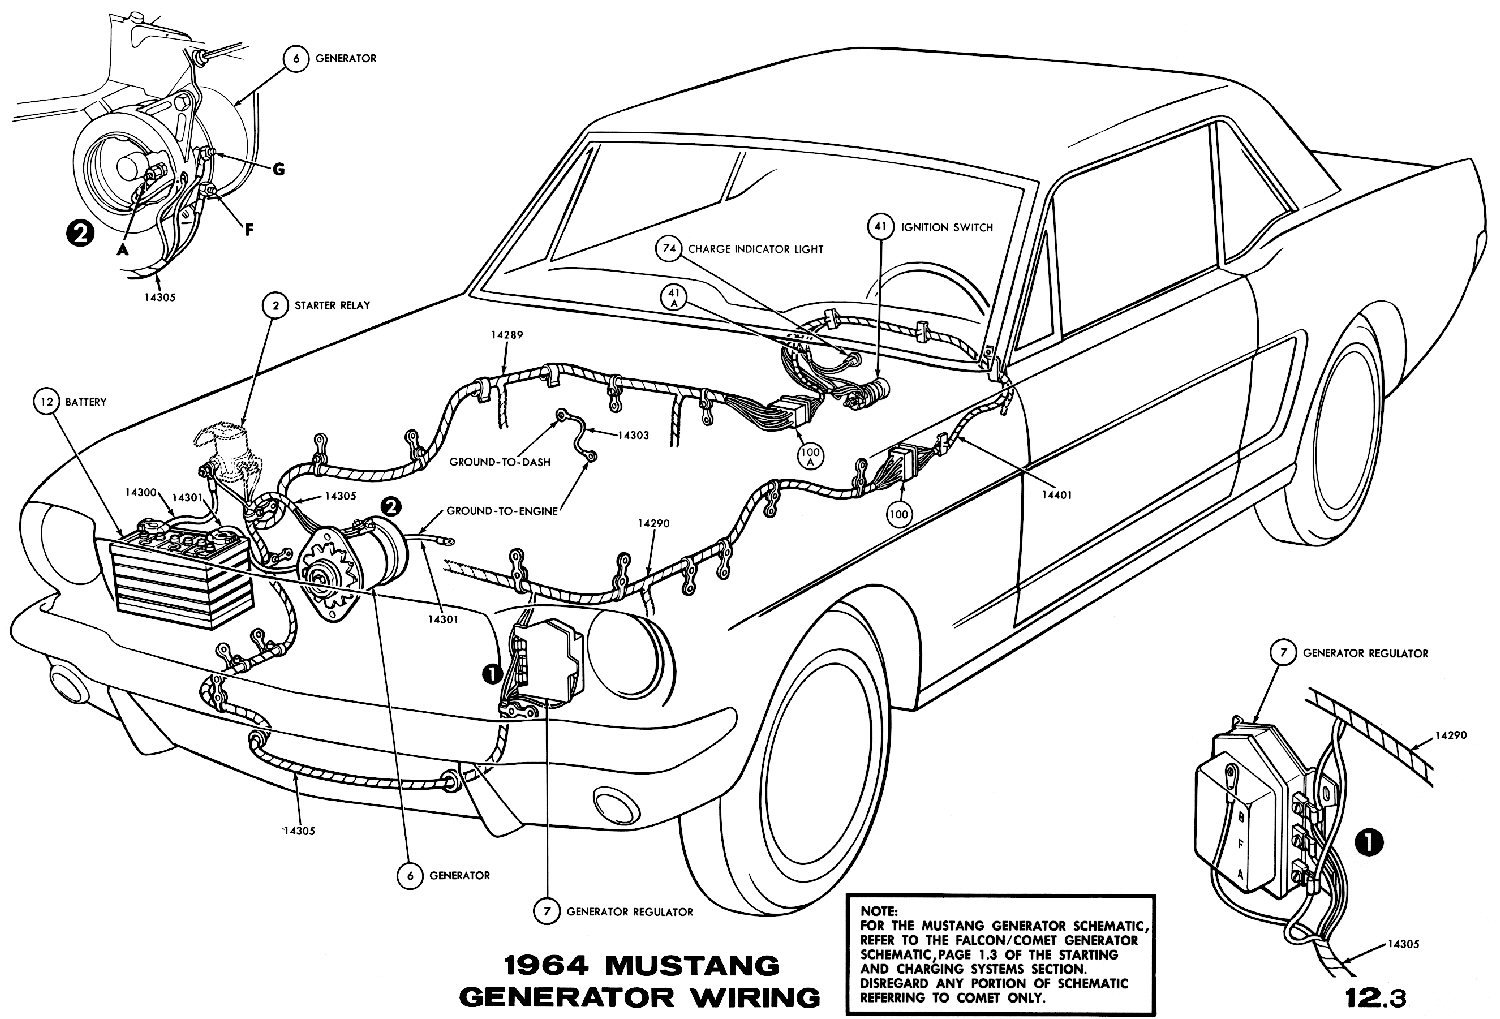 1955 Ford Fairlane Wiring Diagram Generator Library 1964 Thunderbird 1967 Mustang Voltage Regulator Data